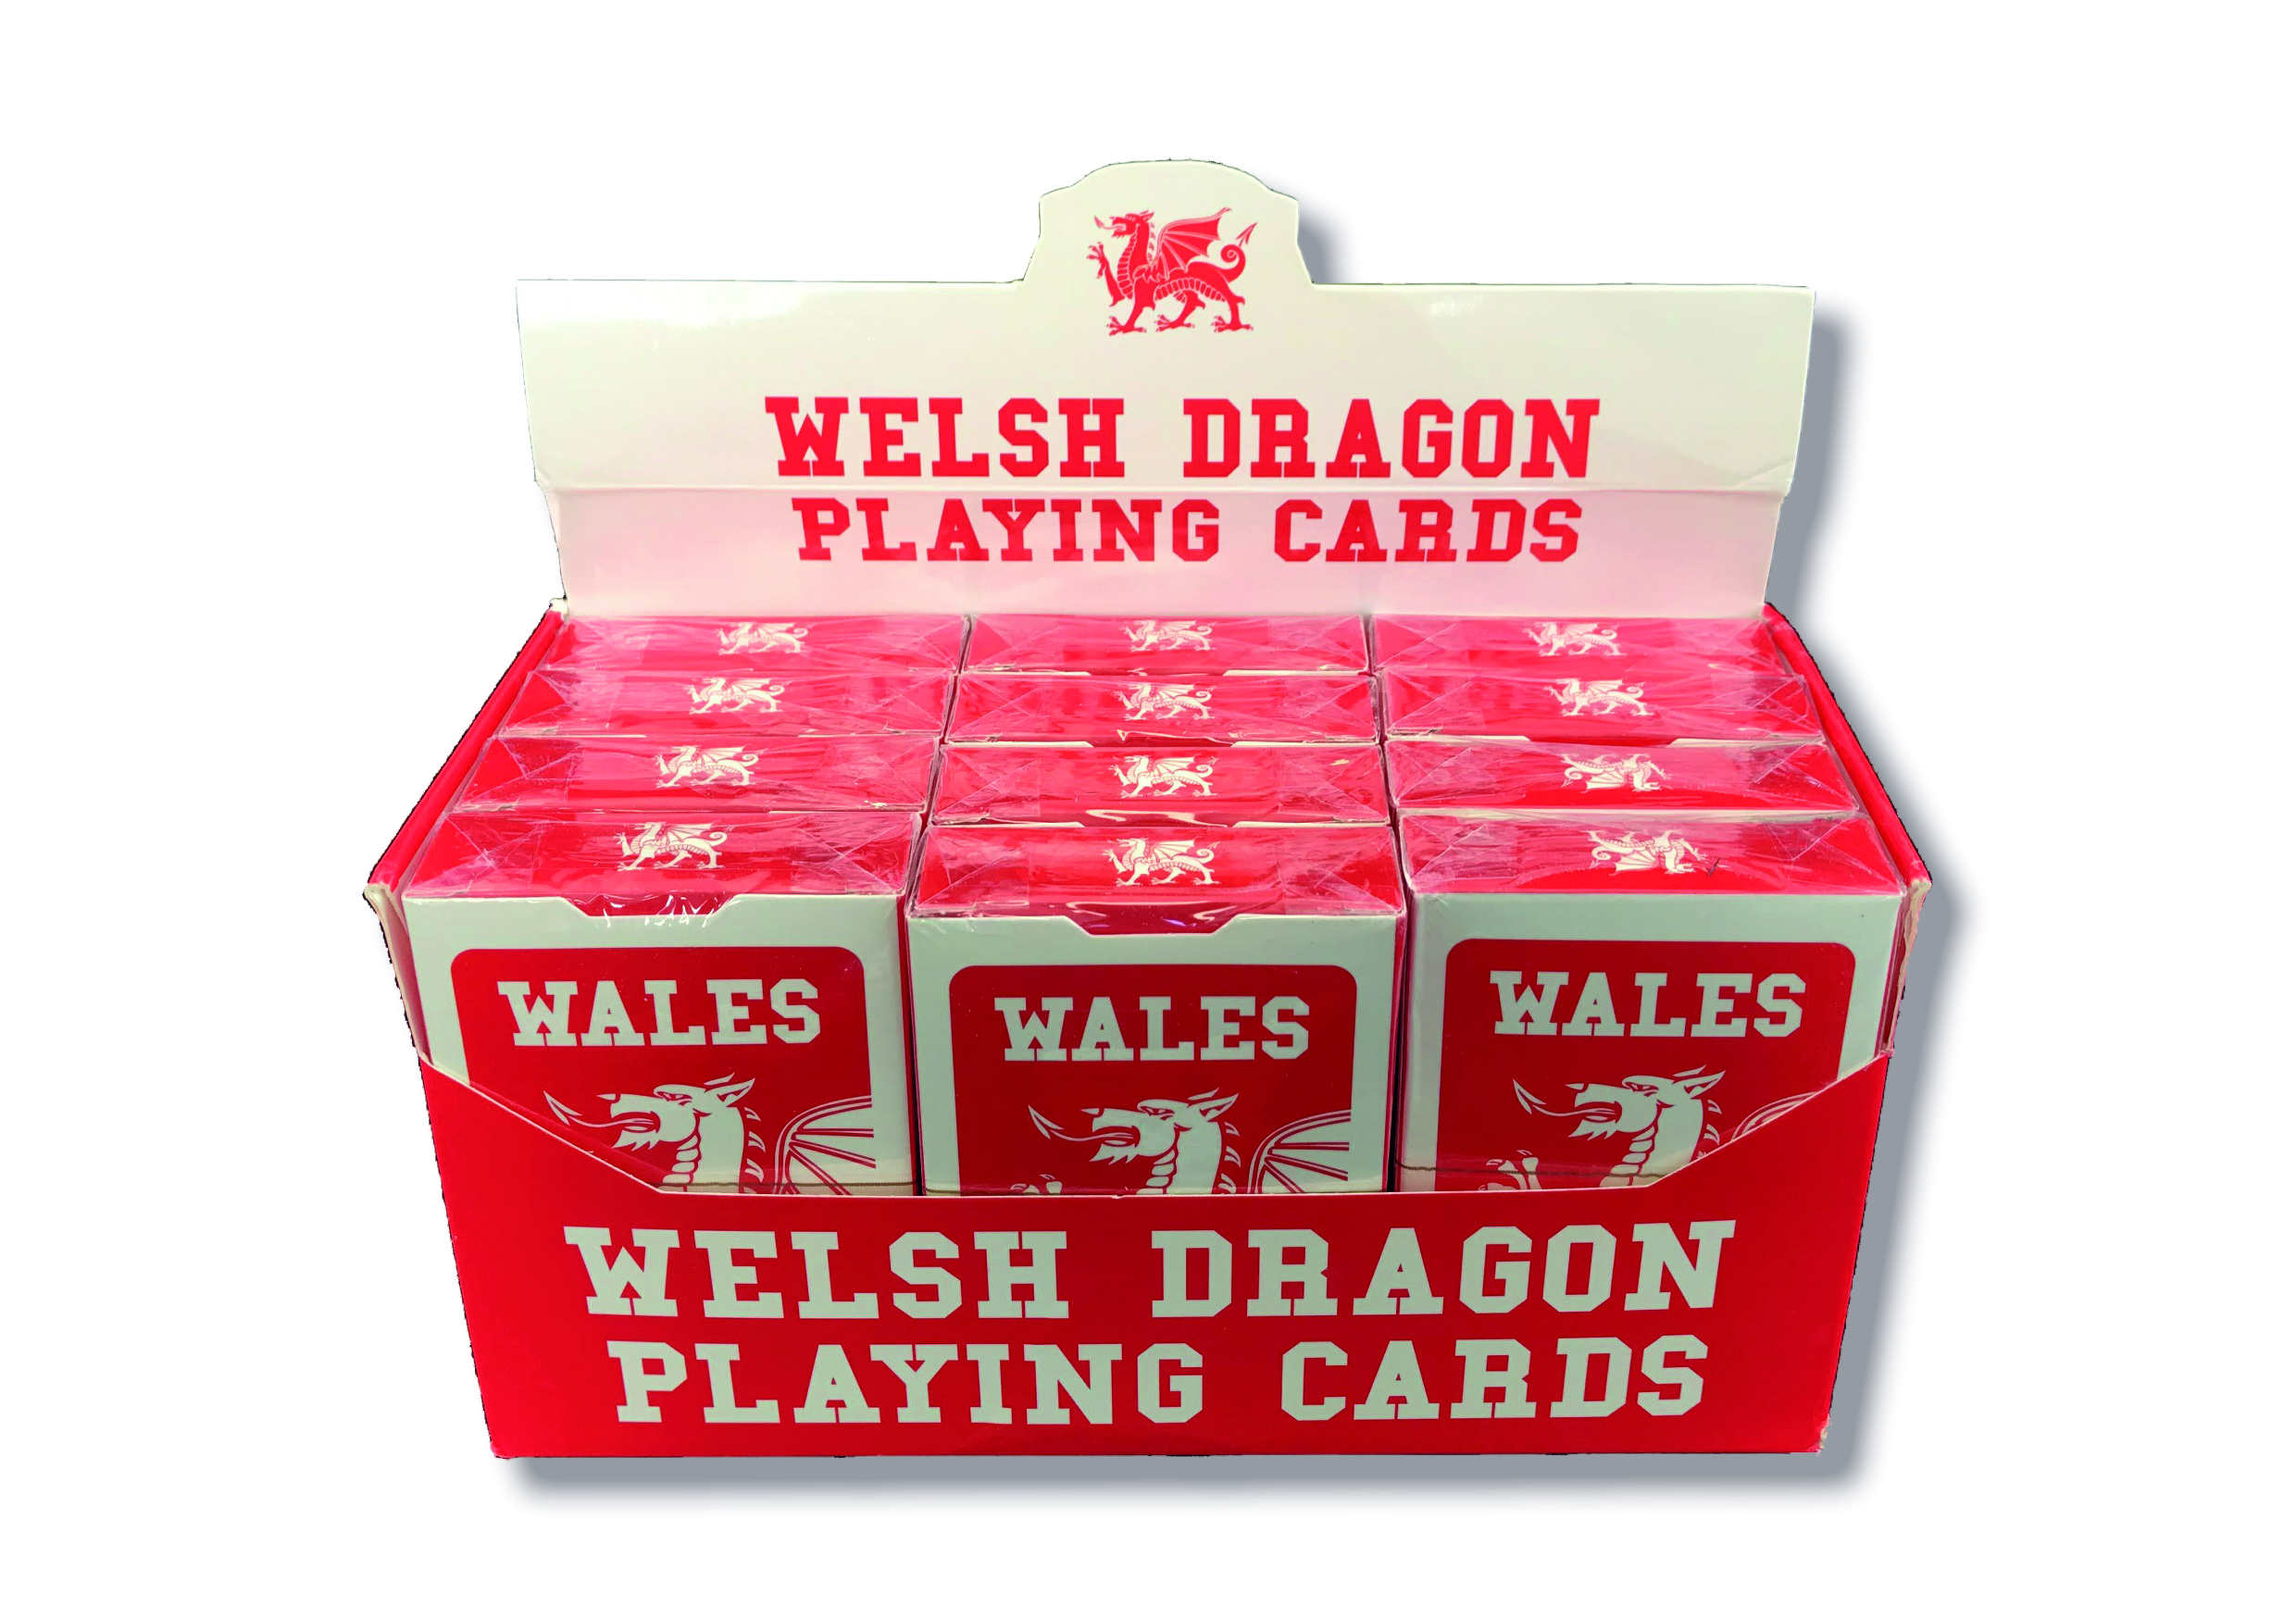 Welsh Dragon Playing Cards in display box